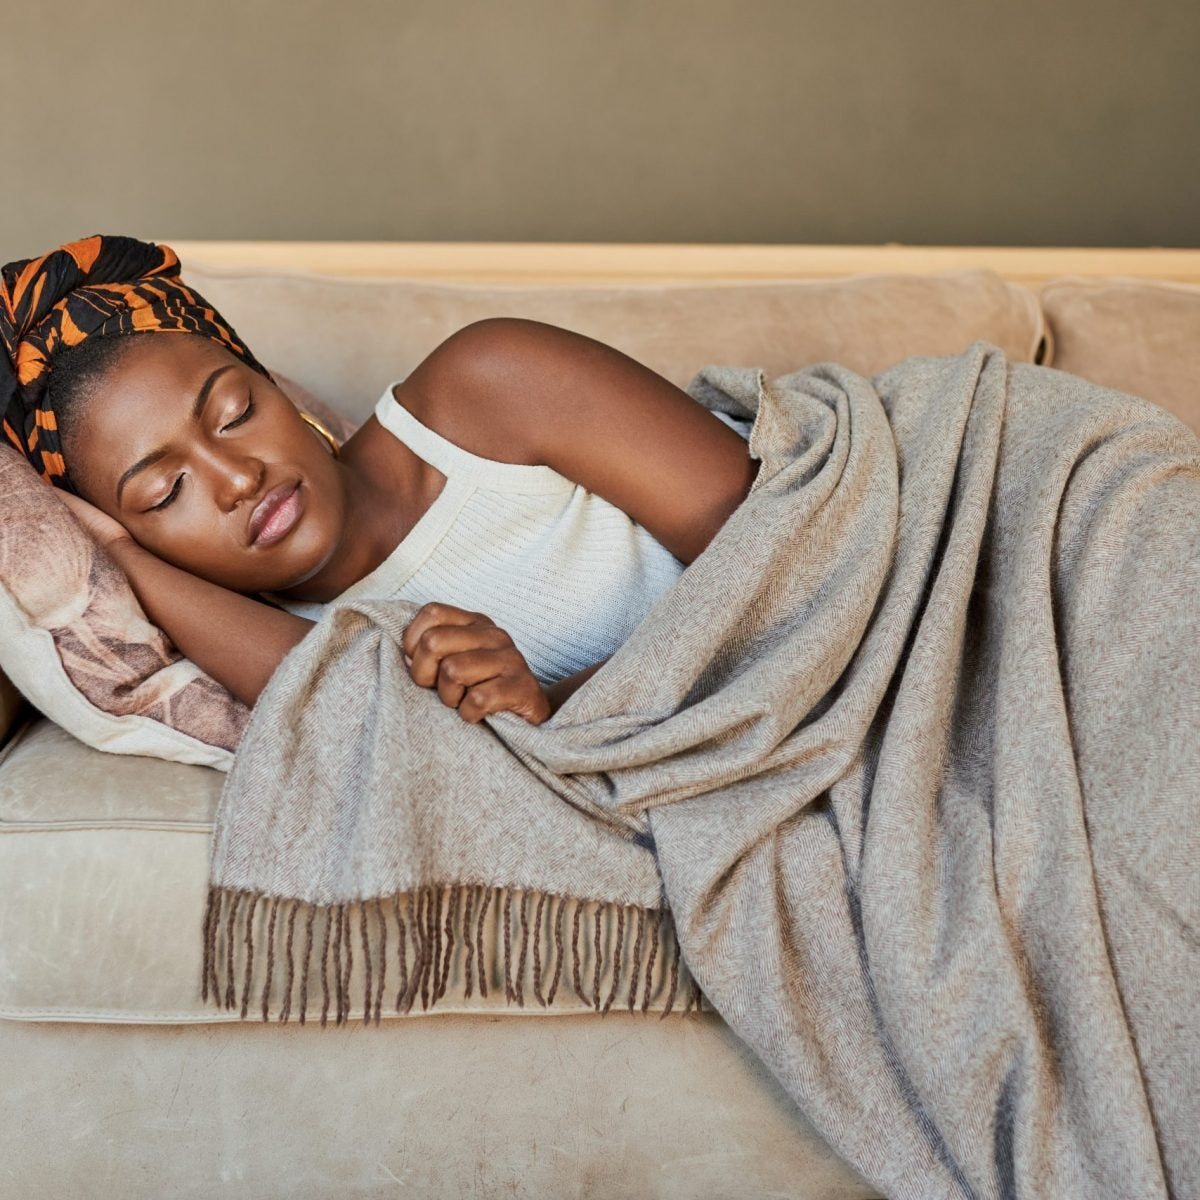 Improve The Quality Of Your Sleep With These 5 Tips